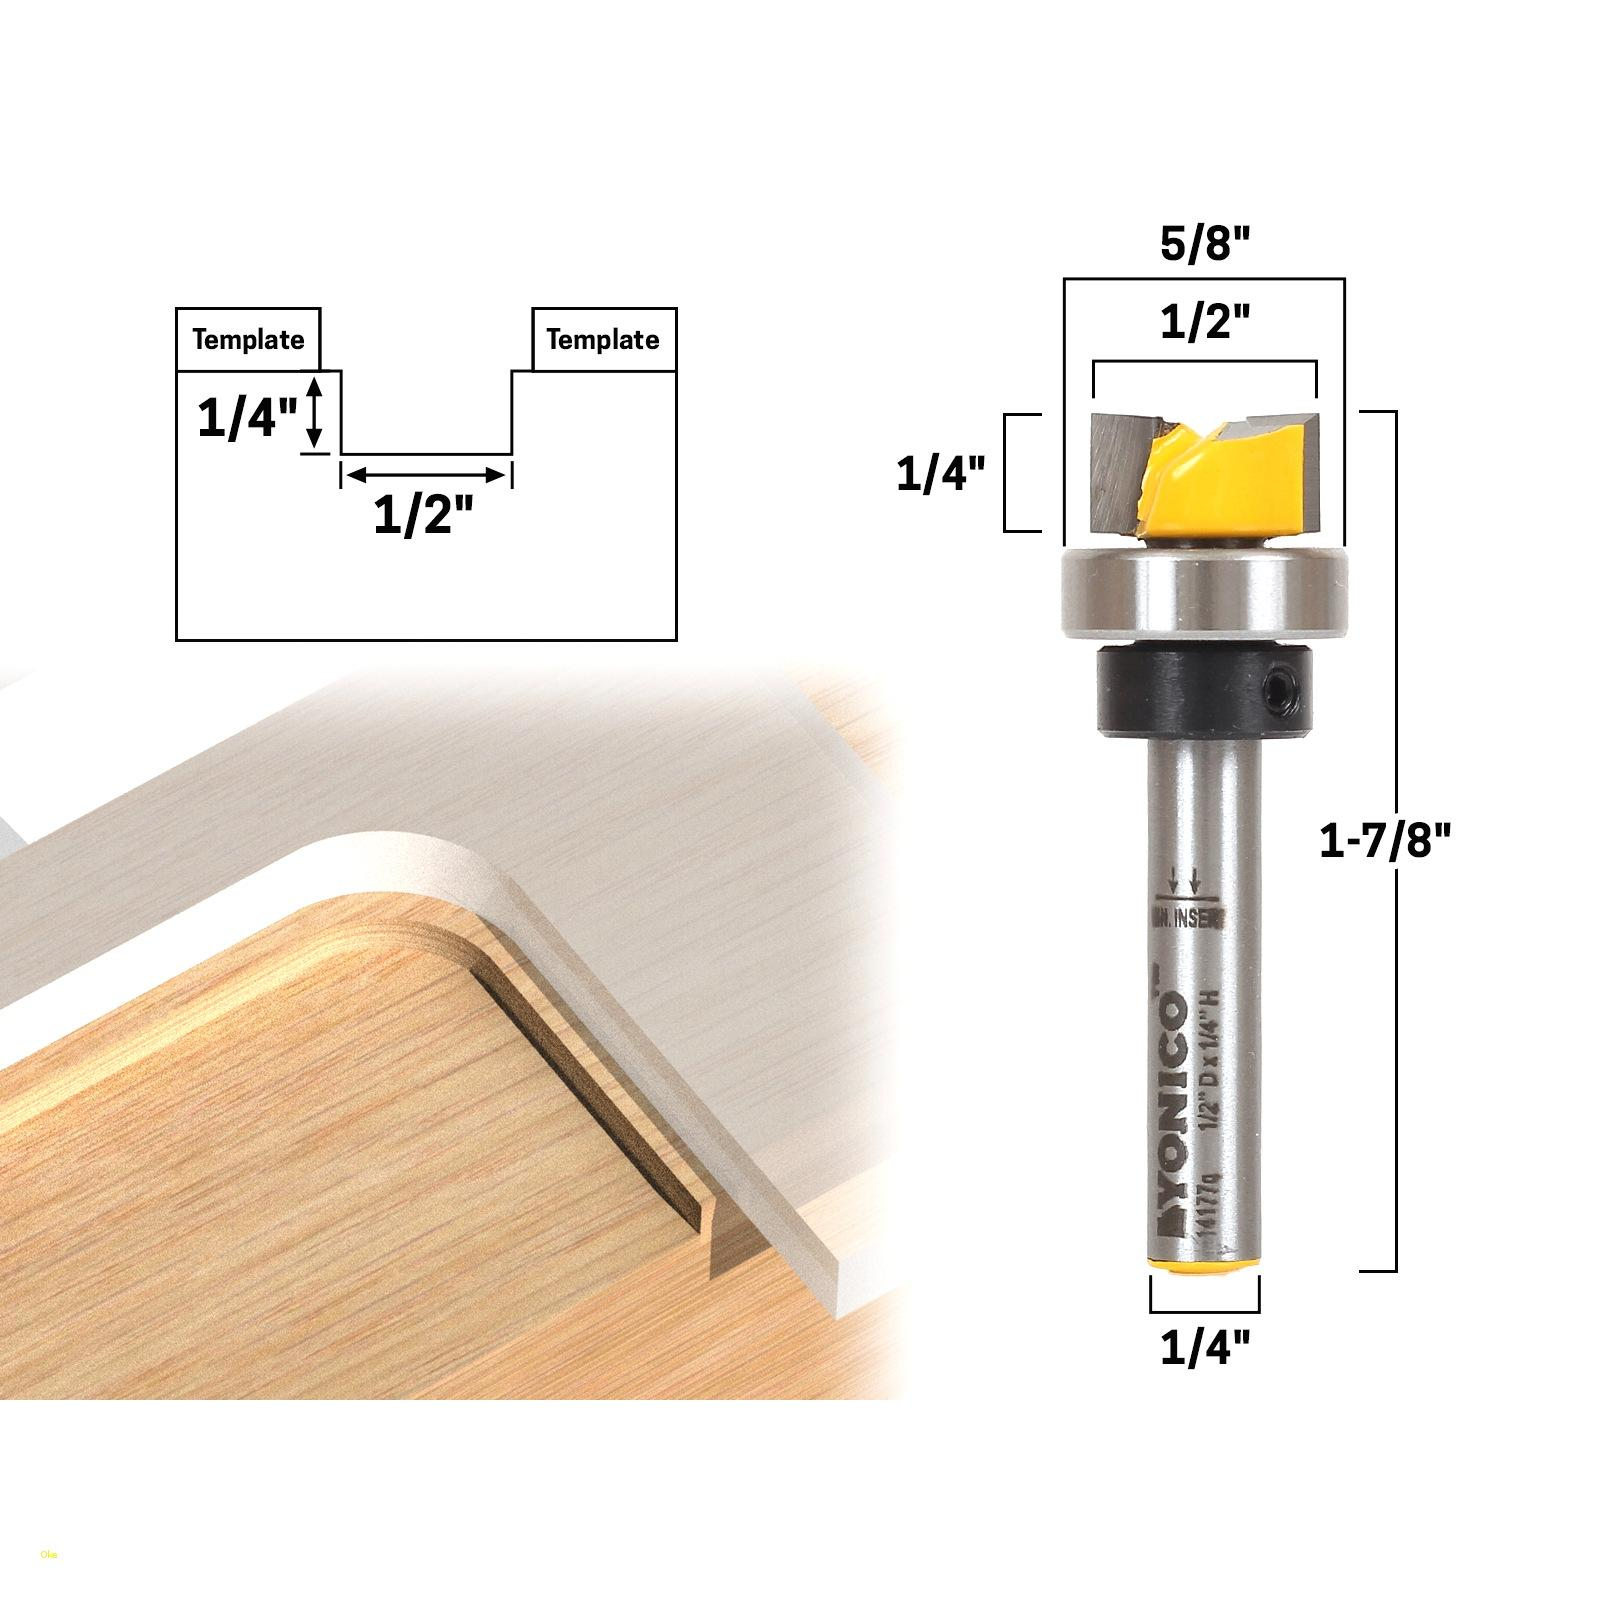 Best Template Router Bit